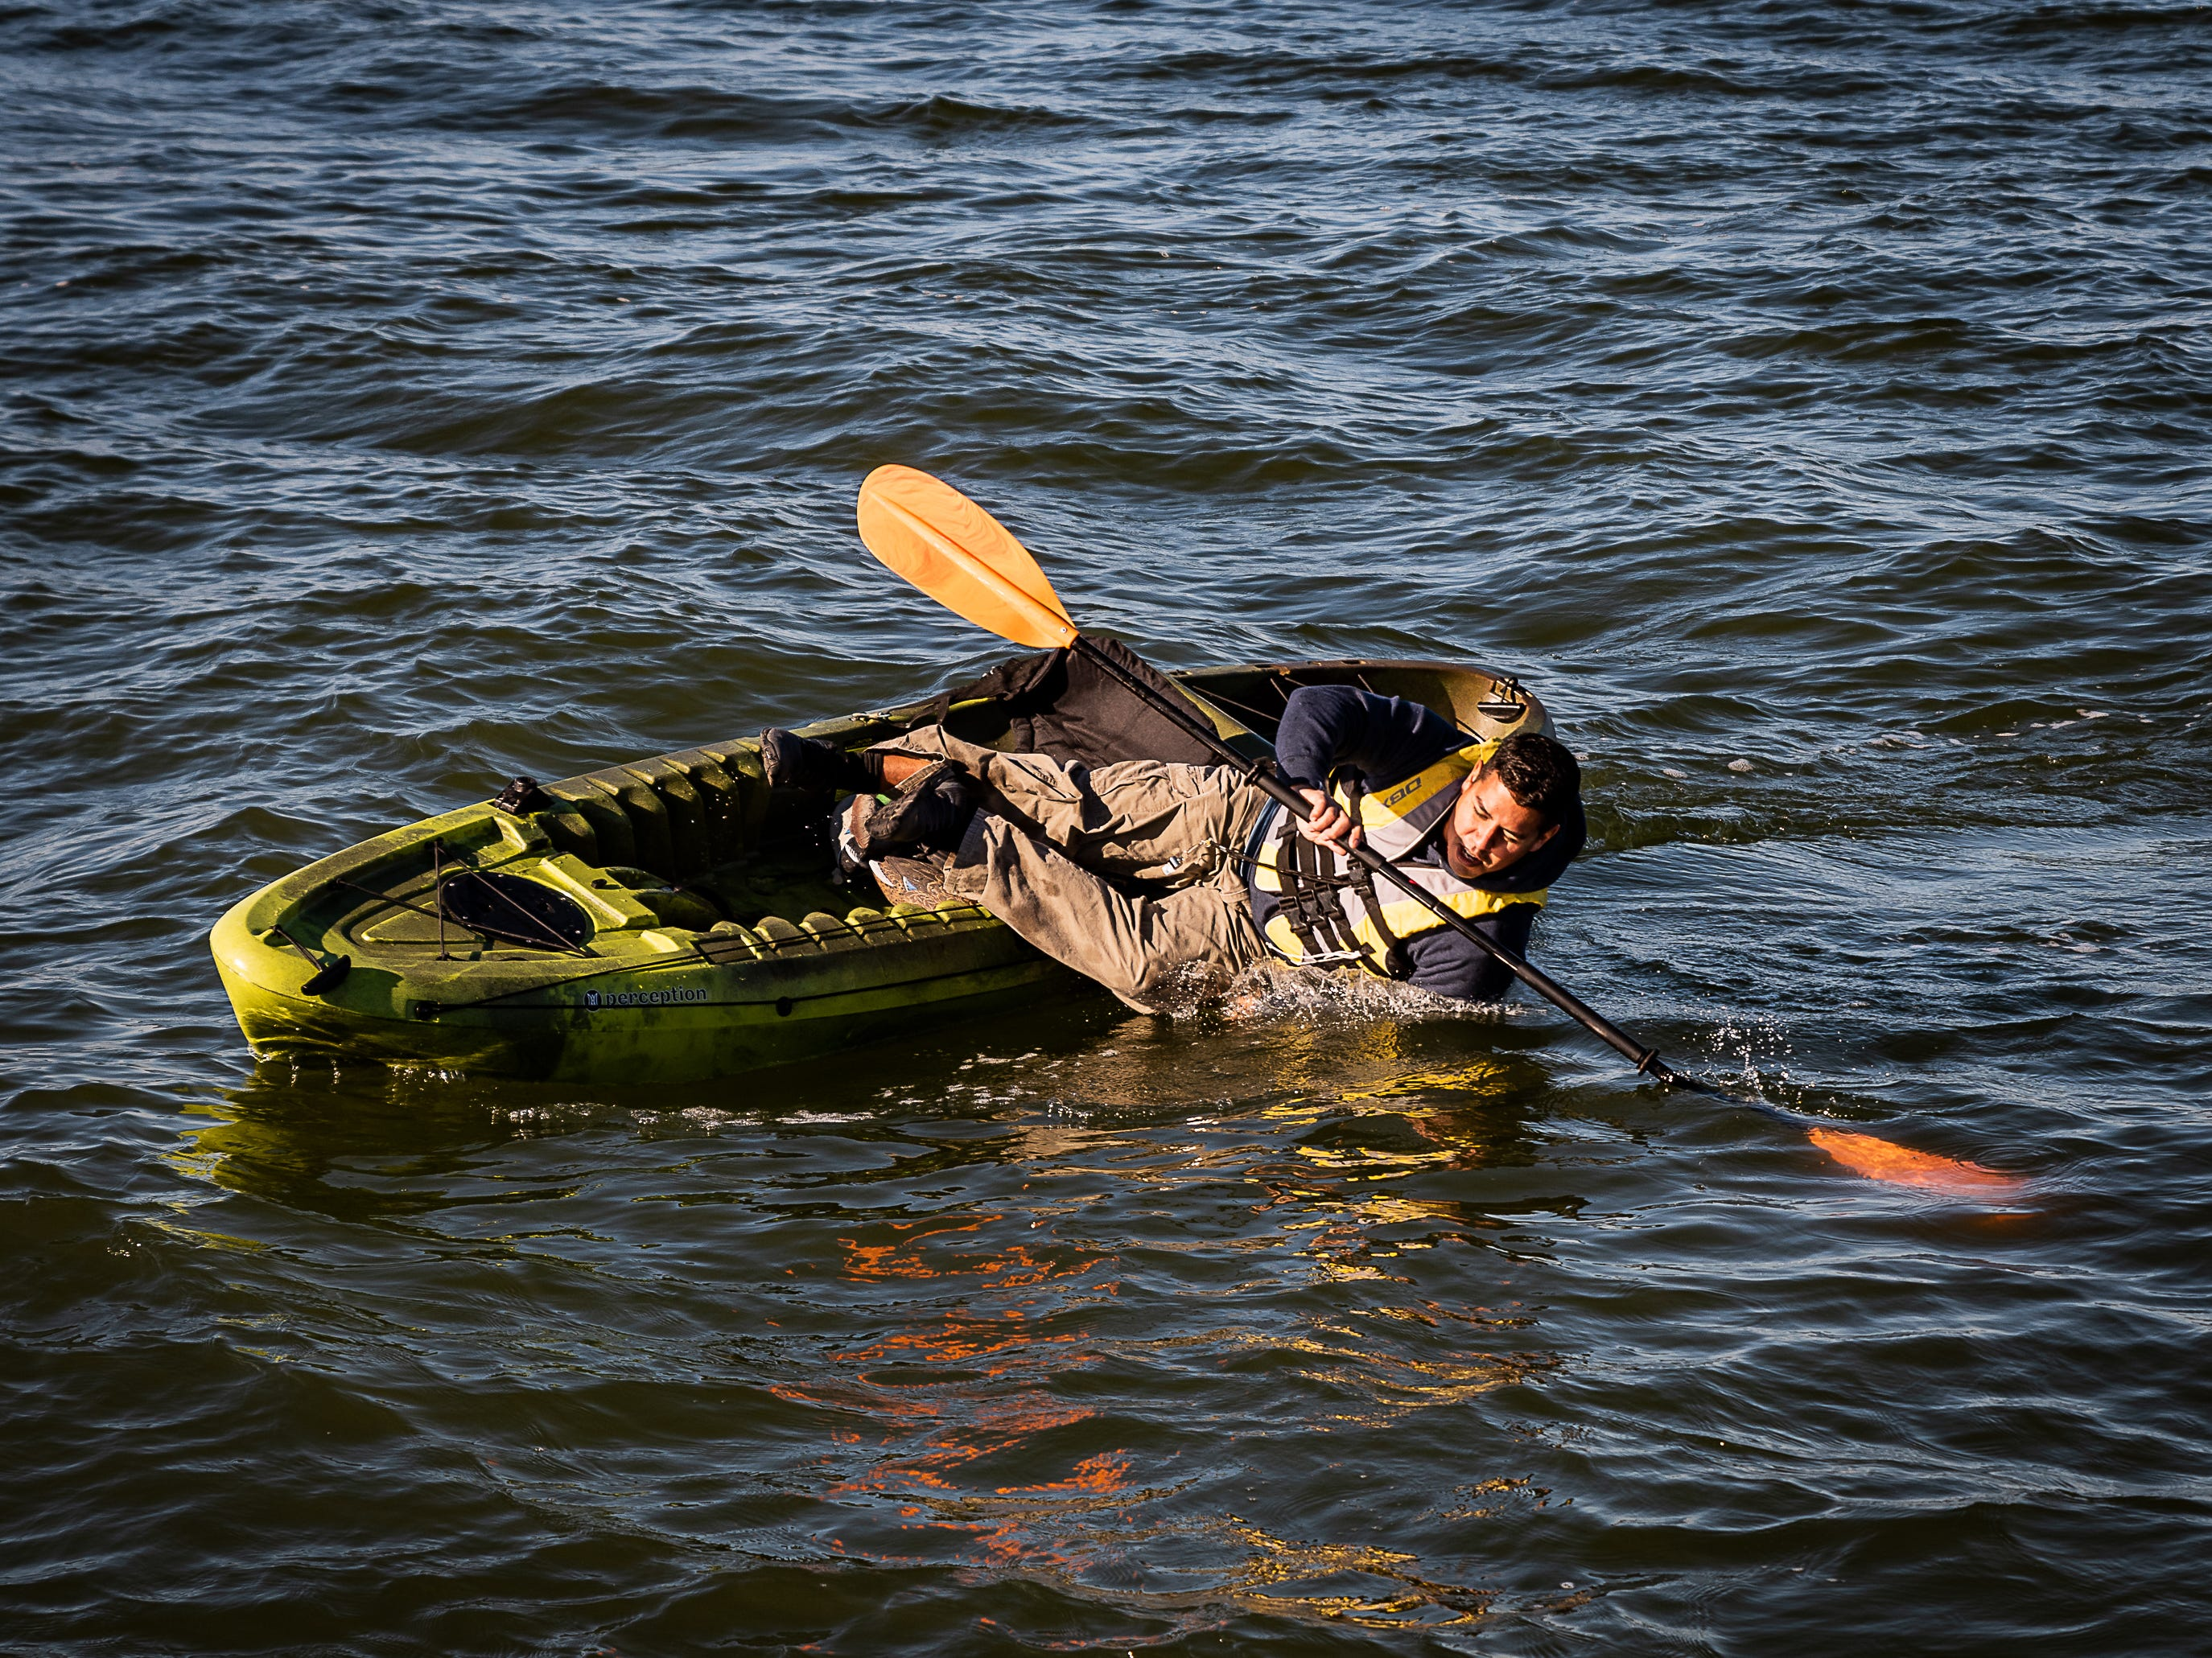 Petty Officer 1st Class Jose Termini falls into the water on purpose to demonstrate proper cold-water survival techniques during a Tuesday, Oct. 30, 2018 U.S. Coast Guard demonstration in Cape Charles, Virginia.